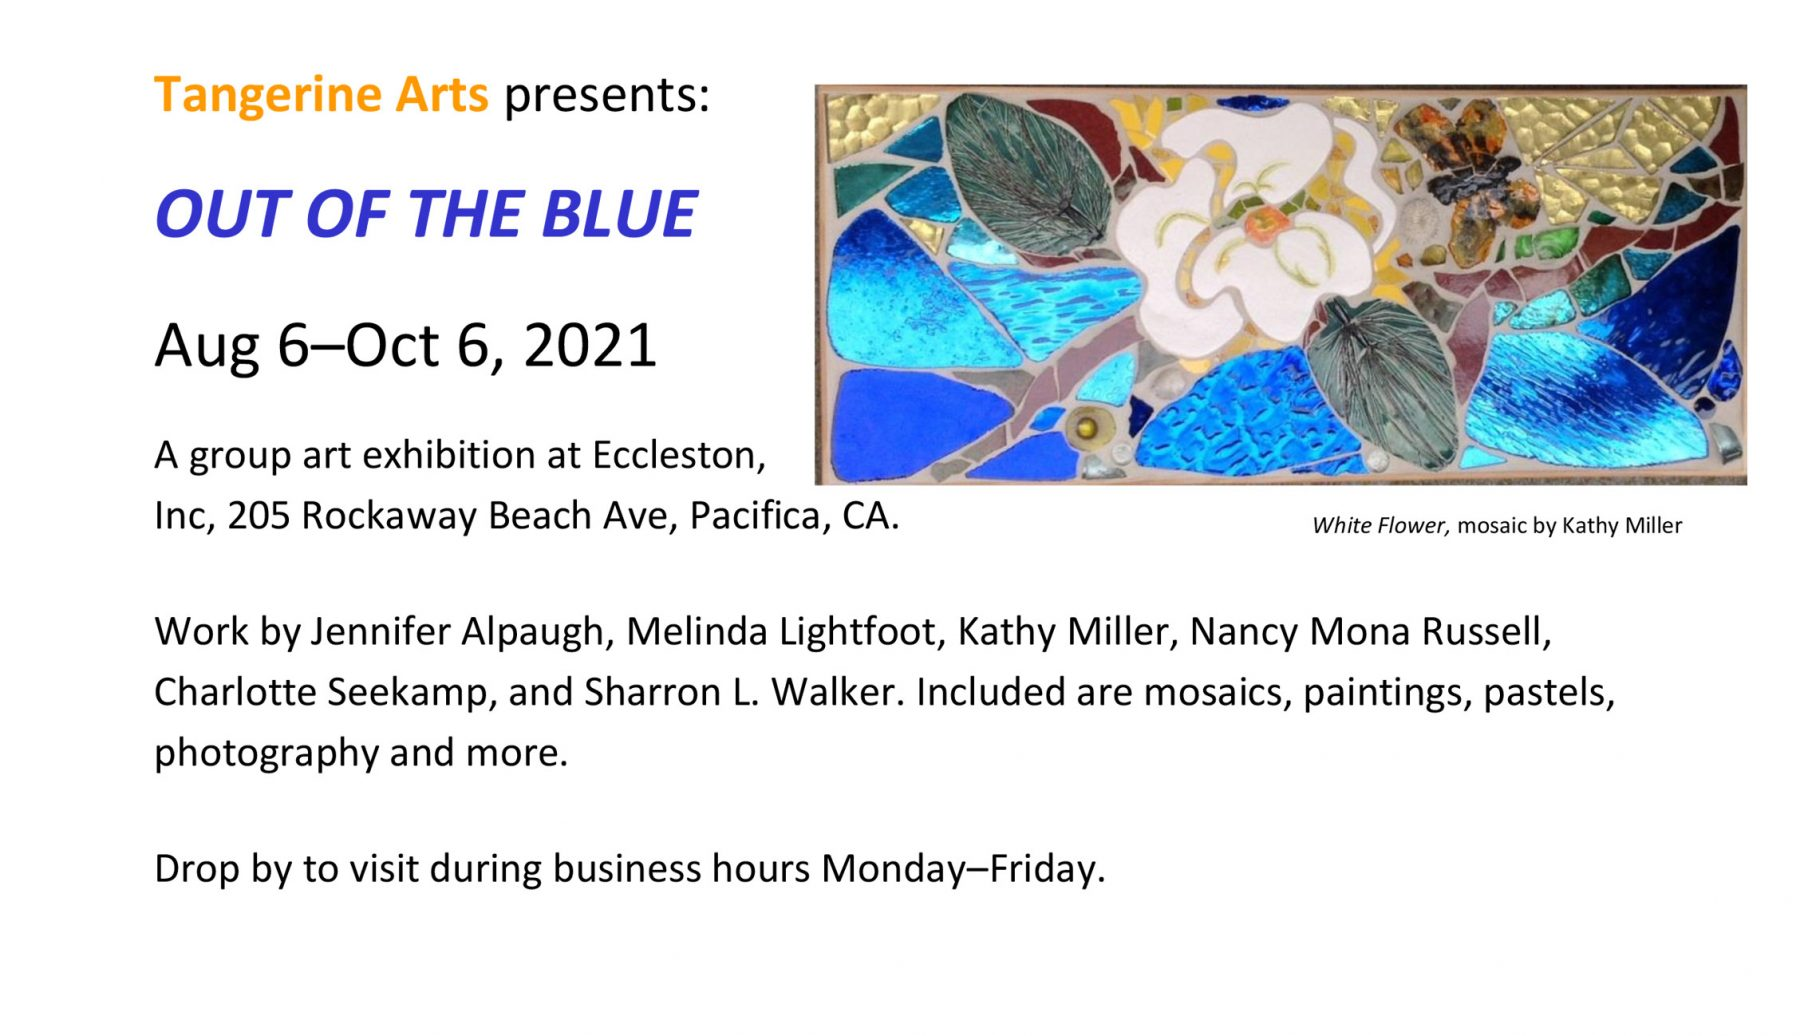 Tangerine Arts presents OUT OF THE BLUE